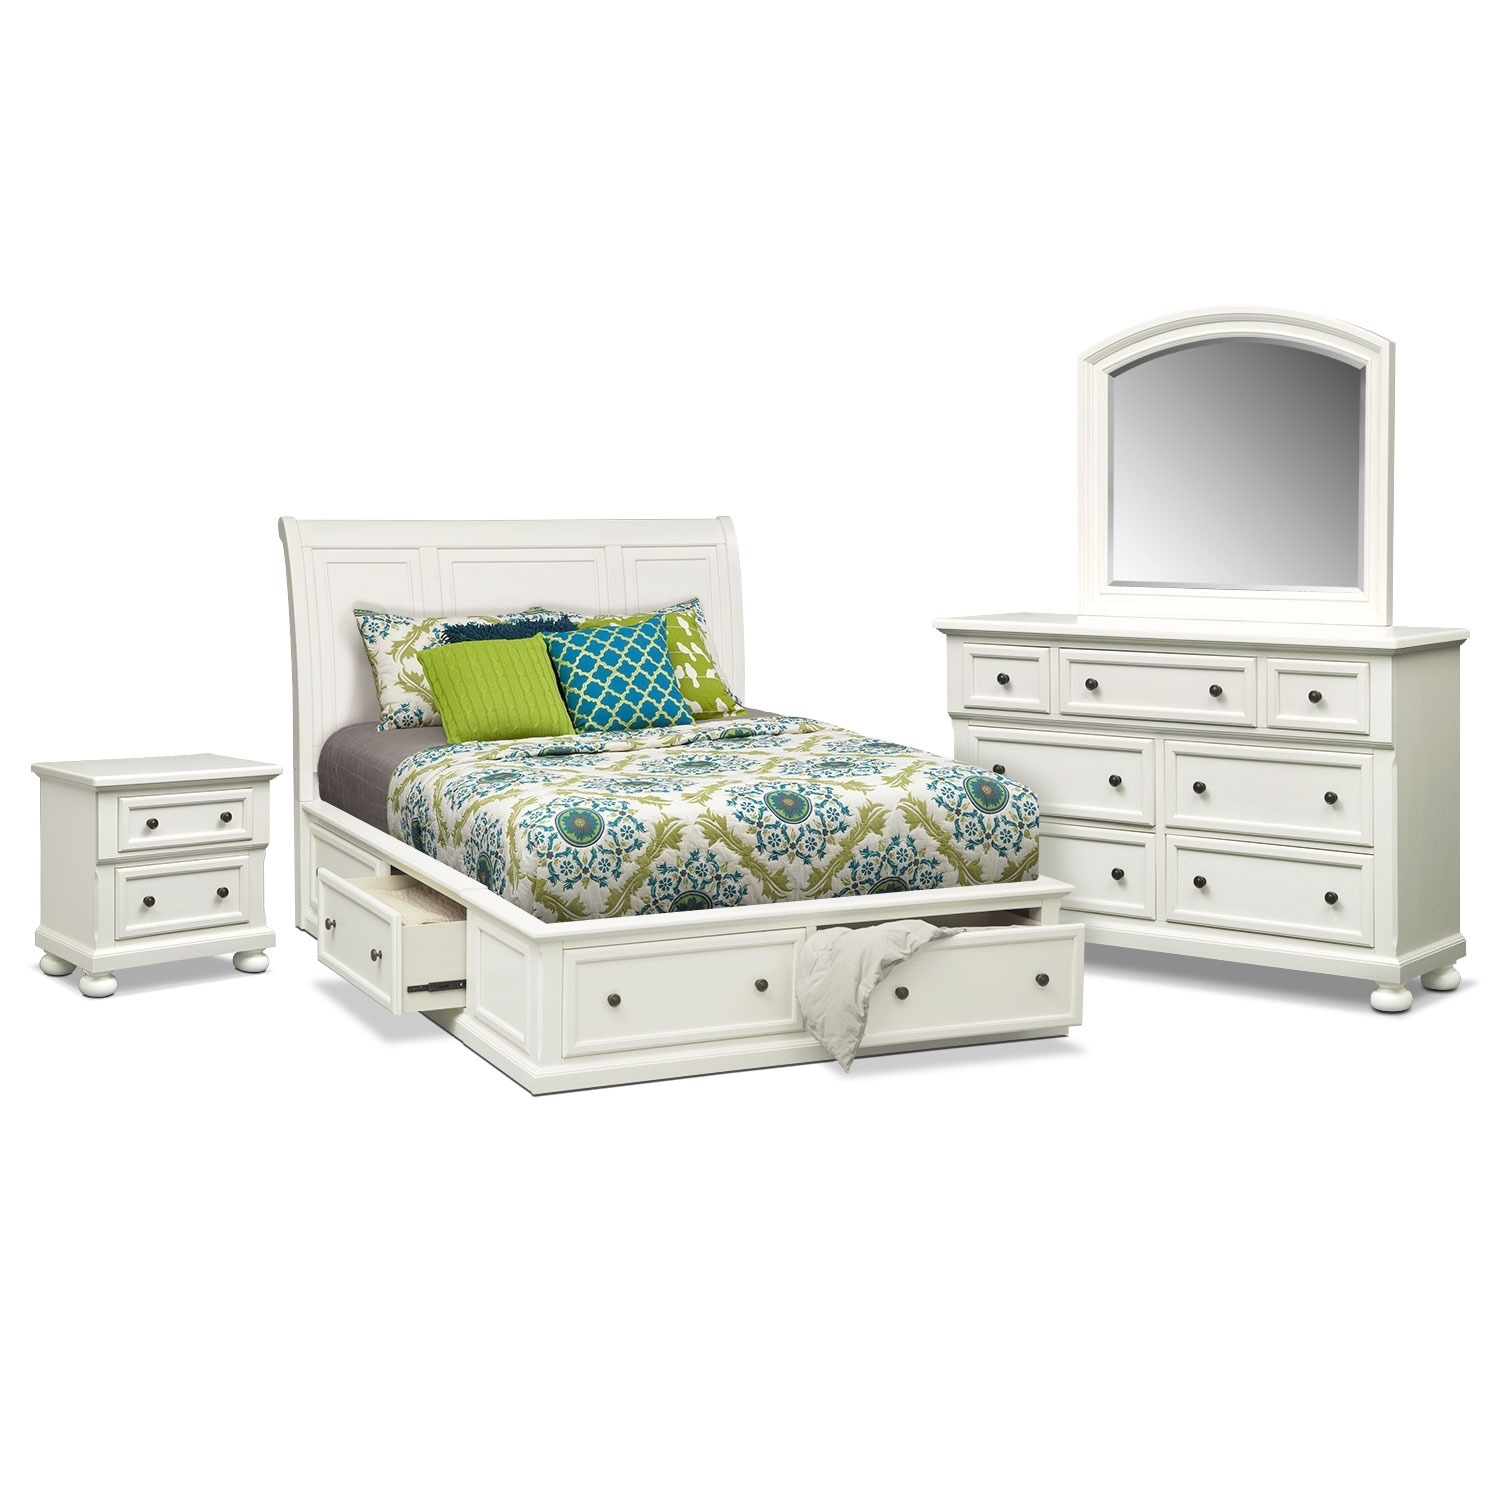 Hanover 6-Piece King Storage Bedroom Set - White